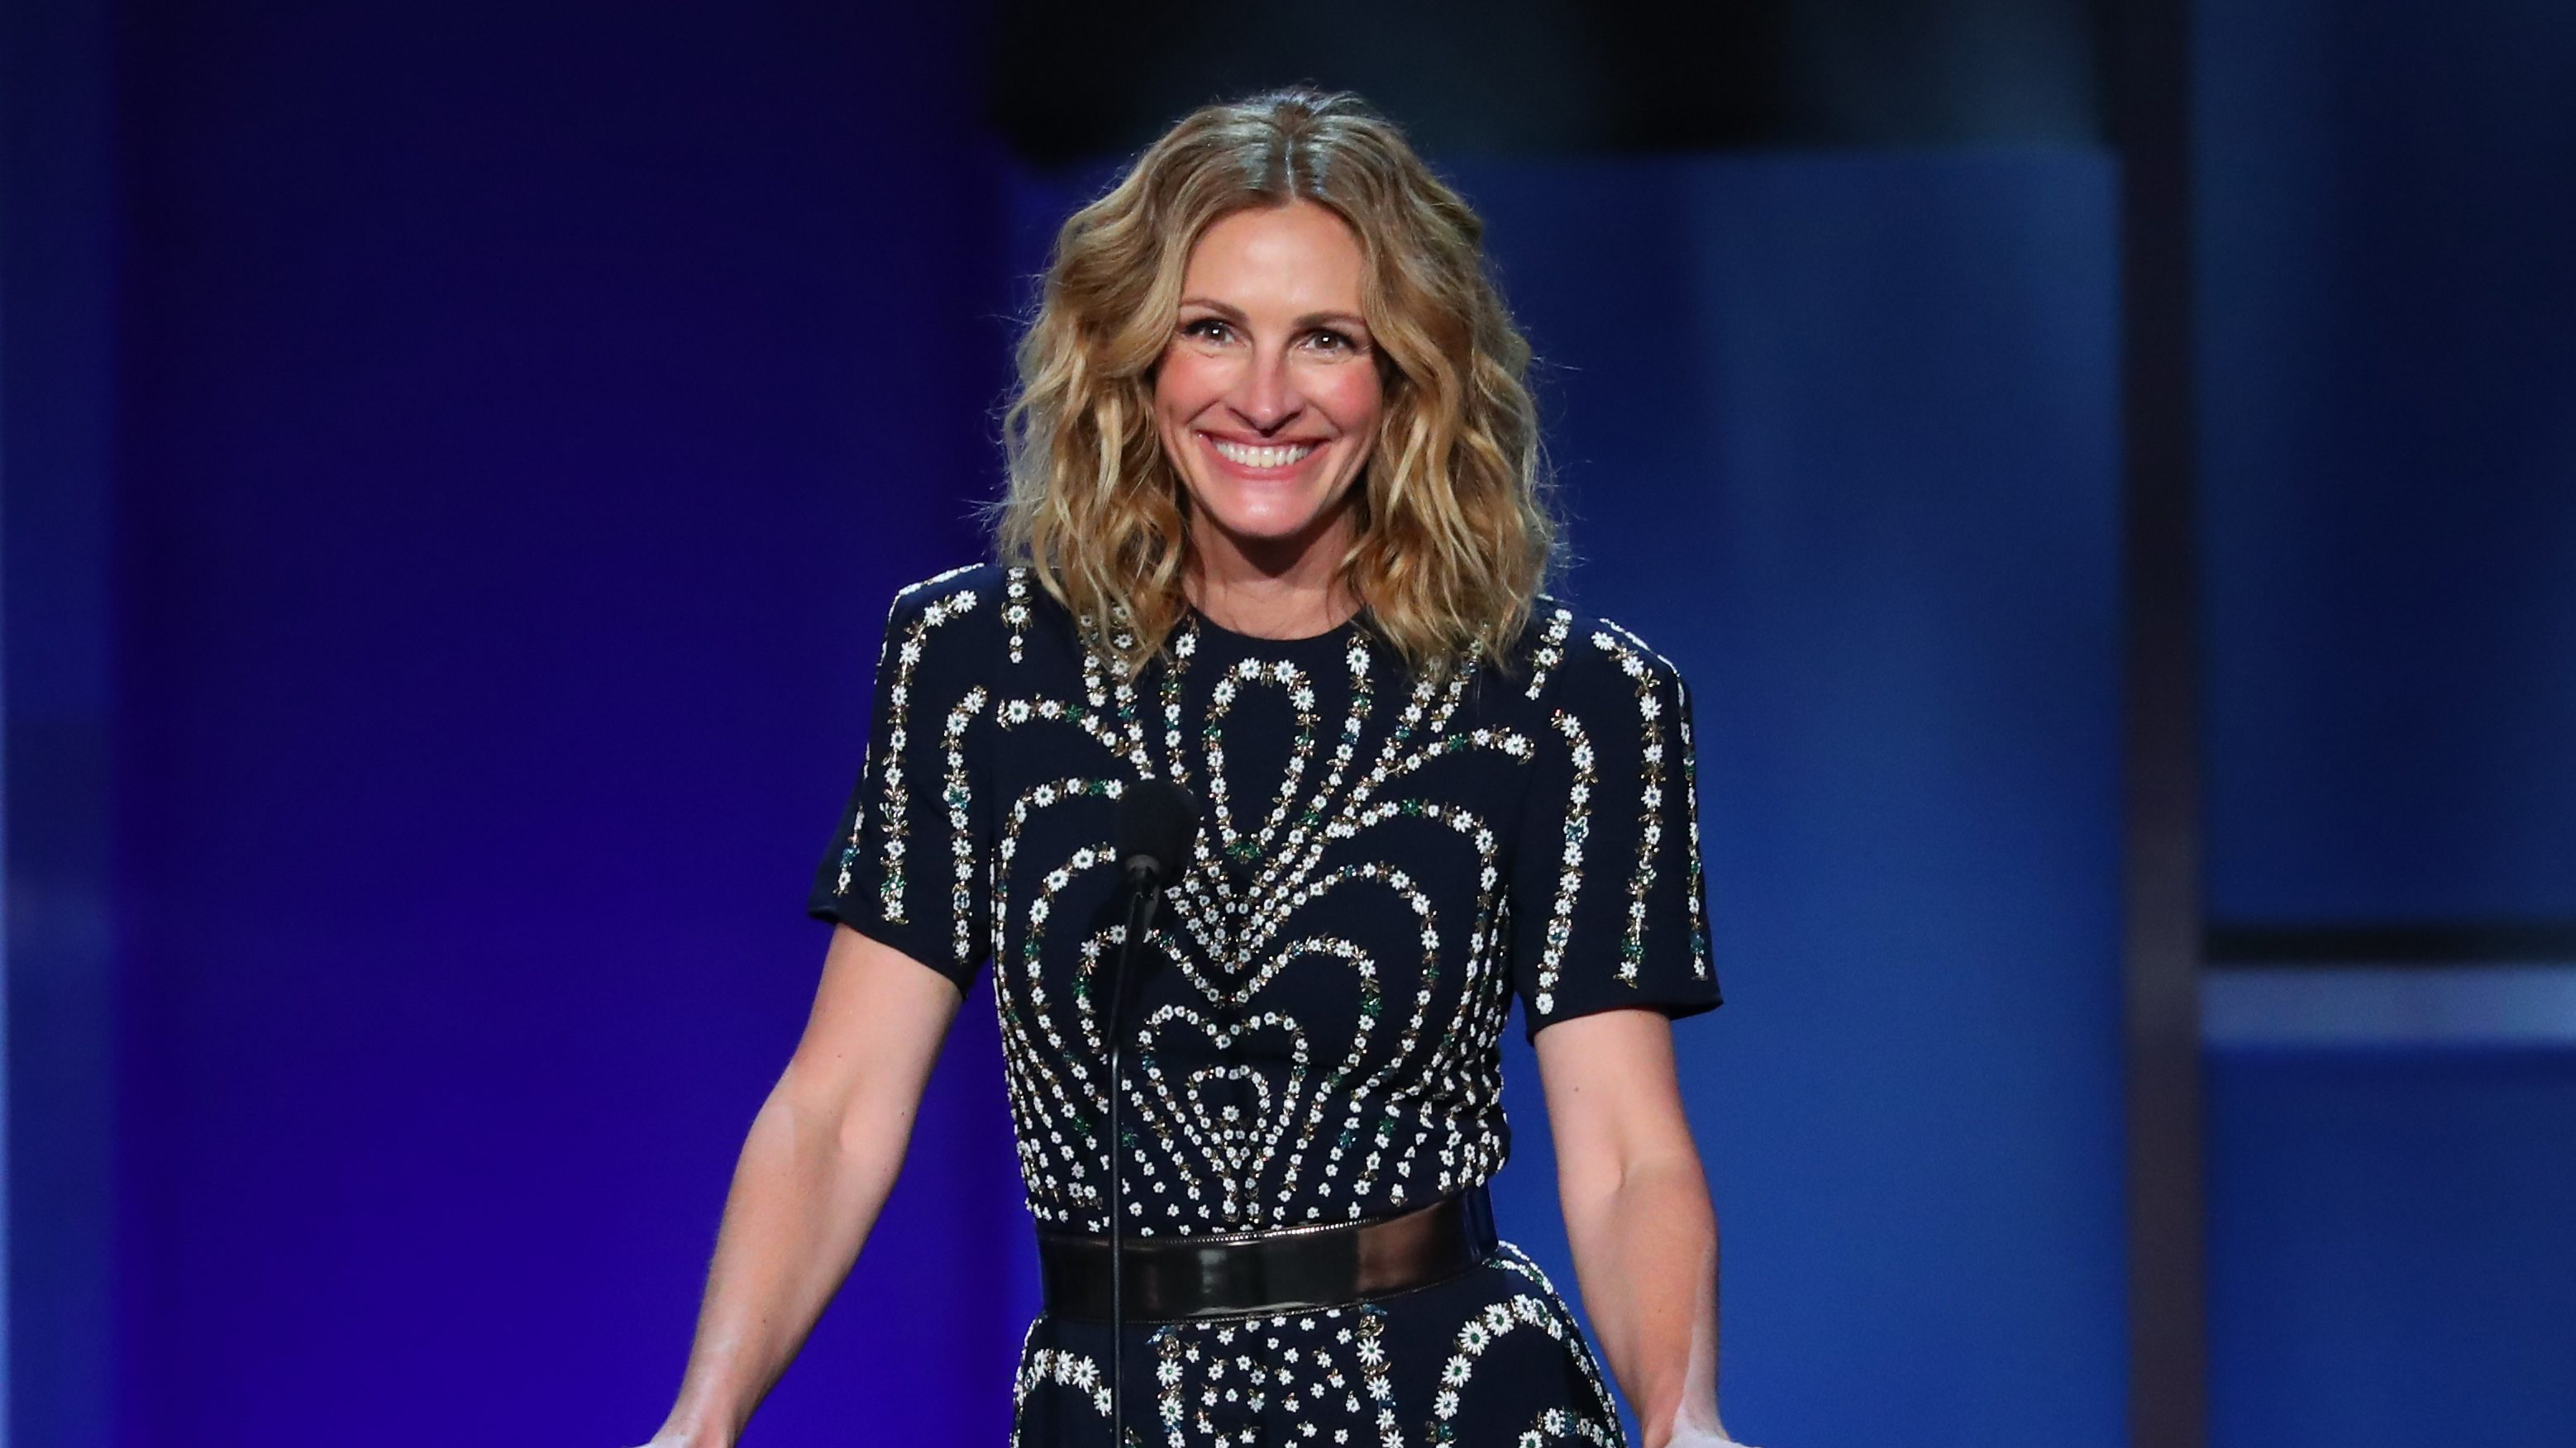 Julia Roberts 'Never Felt Pressure' to Perform After Becoming Hollywood's Highest-Paid Actress: 'I'll Be Part of the Party'